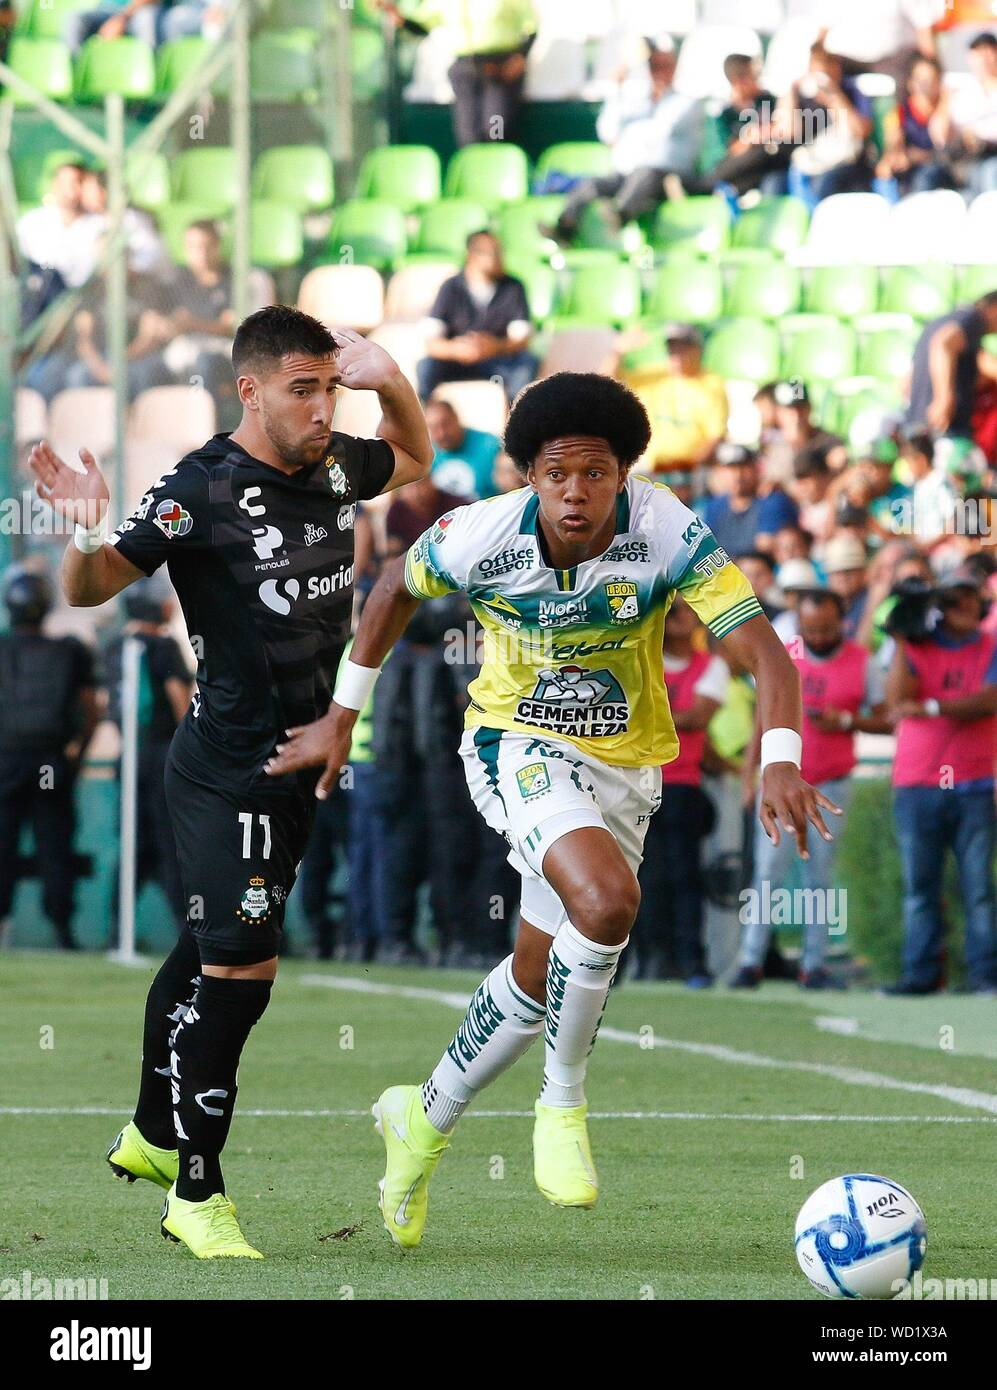 Leon, Mexico. 29th Aug, 2019. Leon's Yairo Moreno (R) in action with  Santos' Fernando Gorriaran (L) during their Mexican tournament soccer match  at Nou Camp stadium in Leon, Mexico, 28 August 2019.